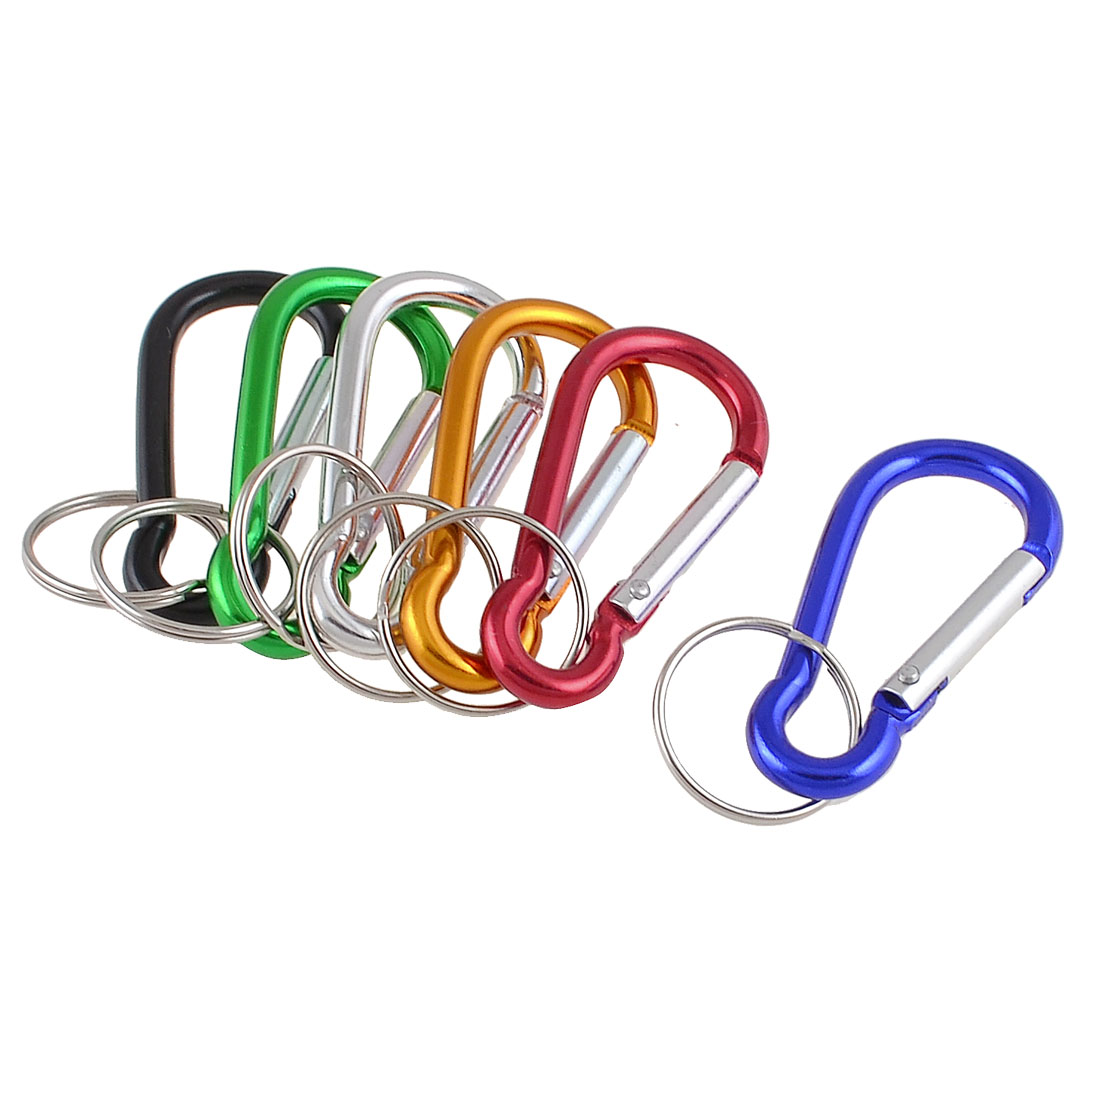 Outdoor Camping Hiking Assorted Color Keychain Keyring Carabiner Hooks 12 Pcs